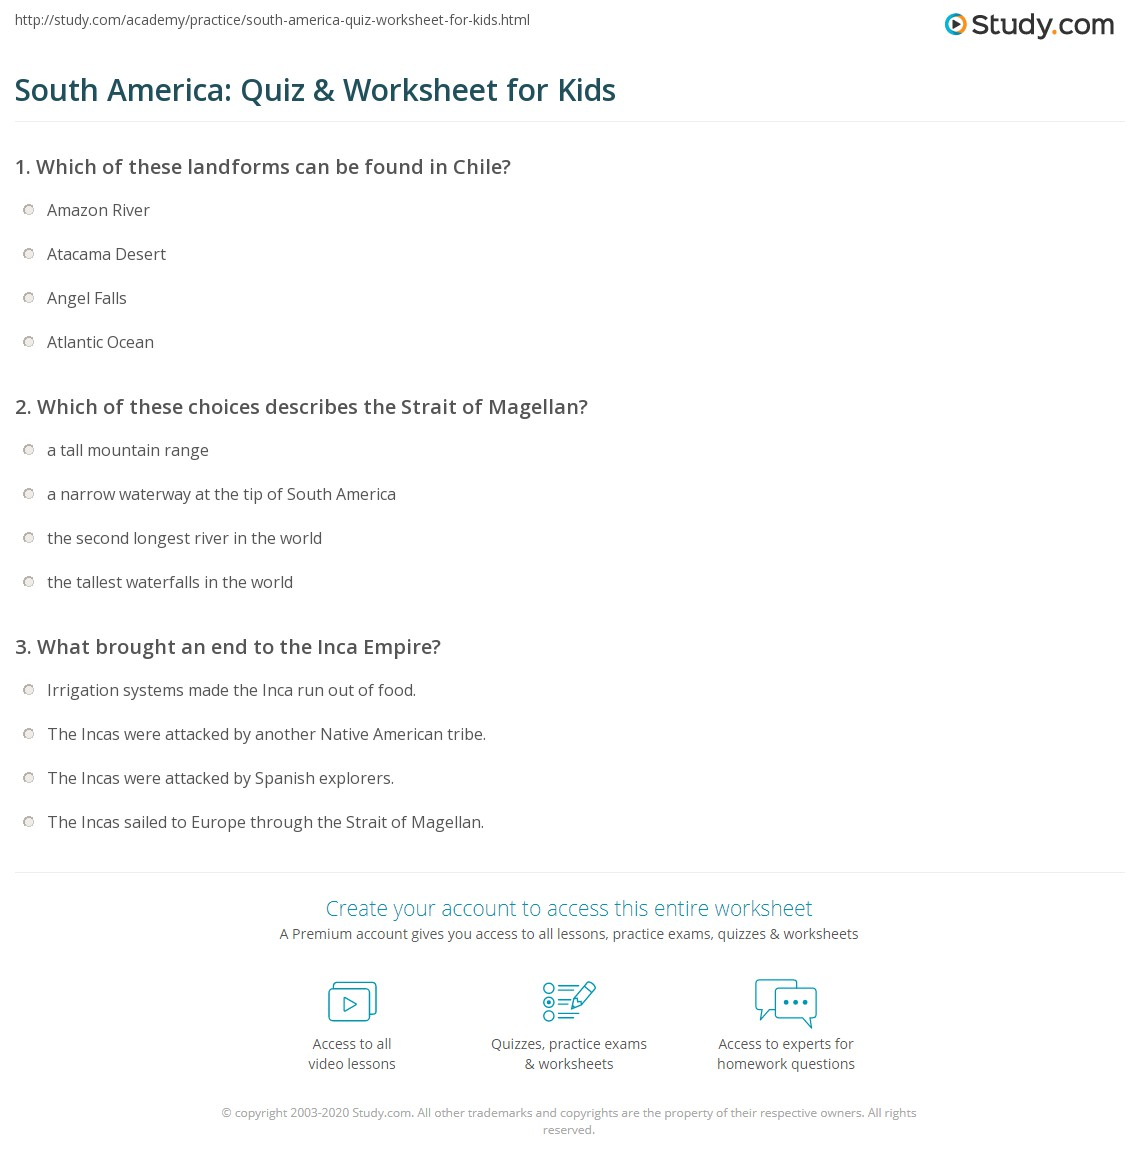 South America: Quiz & Worksheet for Kids | Study.com on